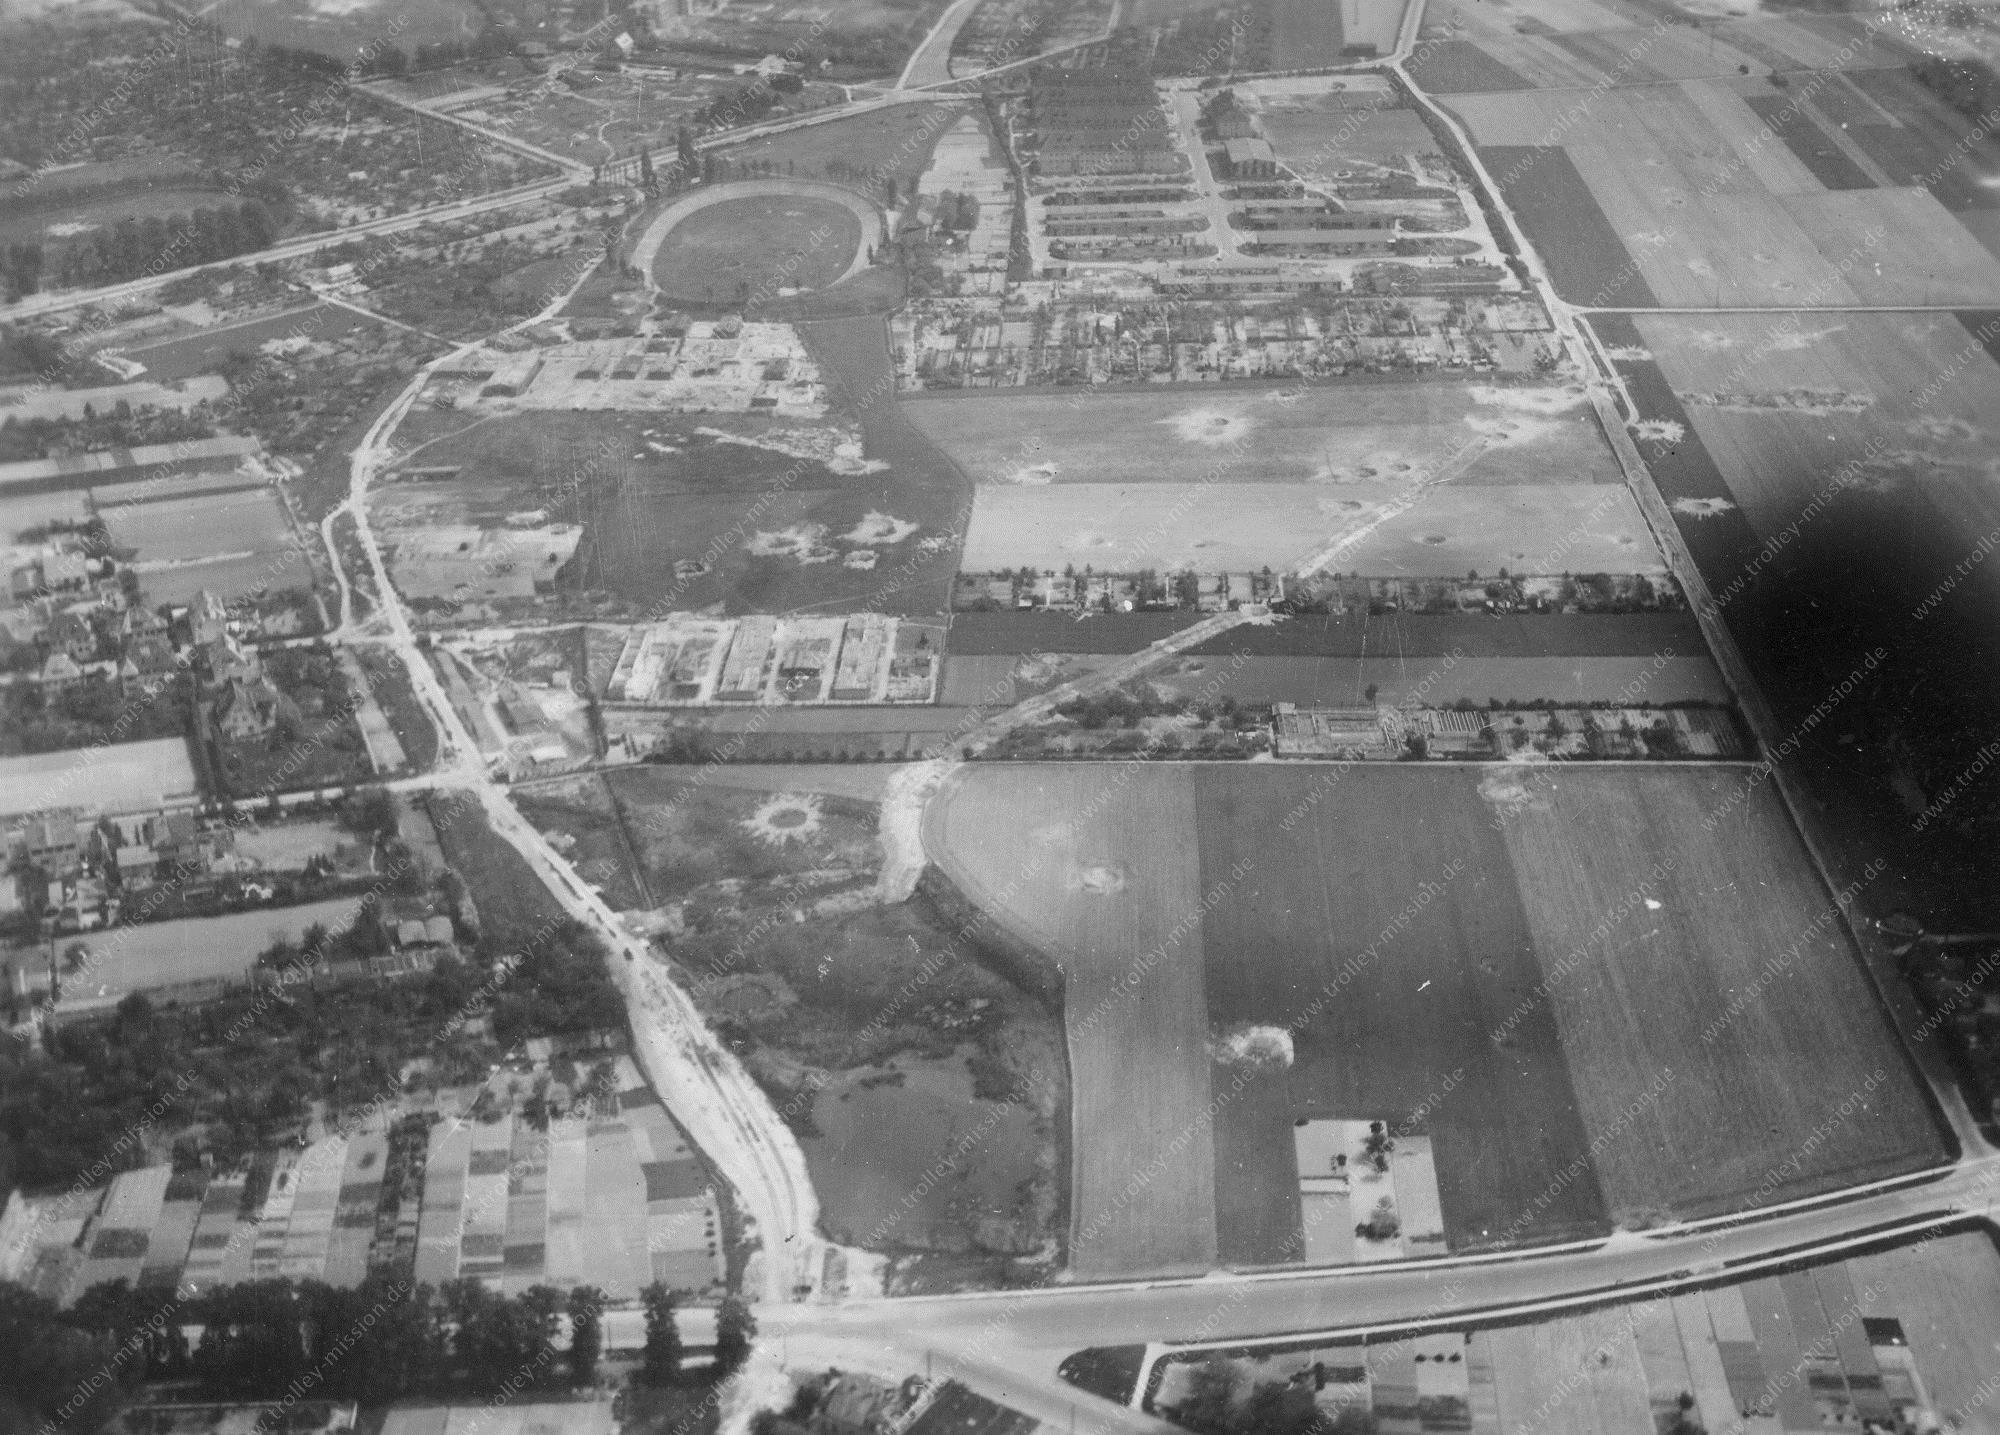 Brunswick from above: Aerial view after Allied air raids in World War II